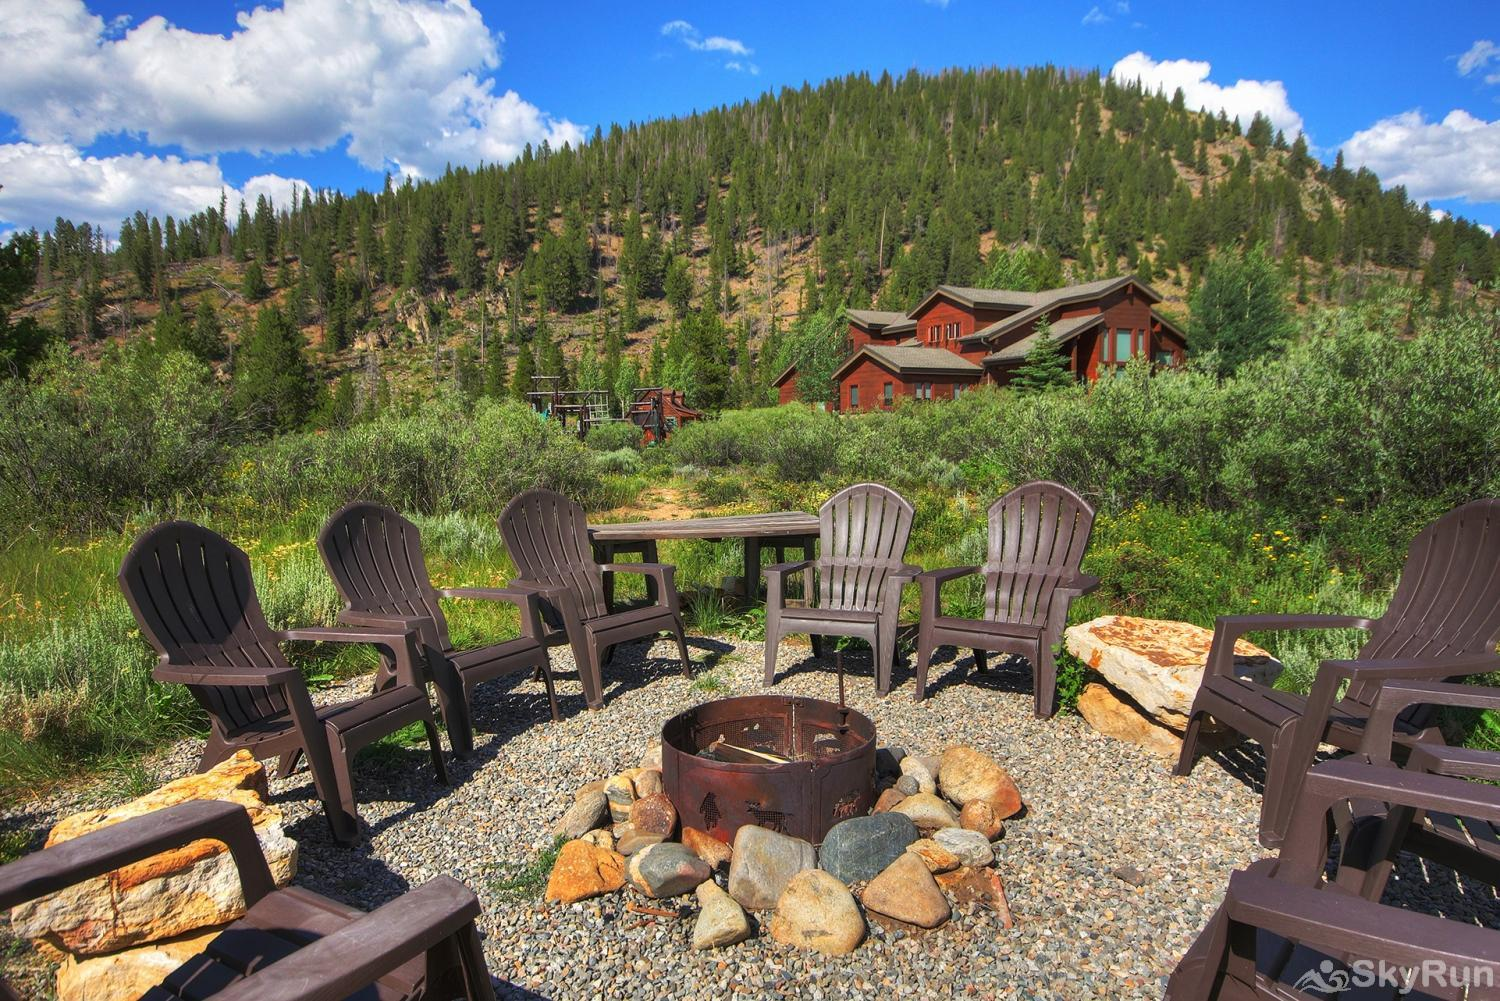 Swan River Retreat Private fire pit with plenty of seating for friends and family